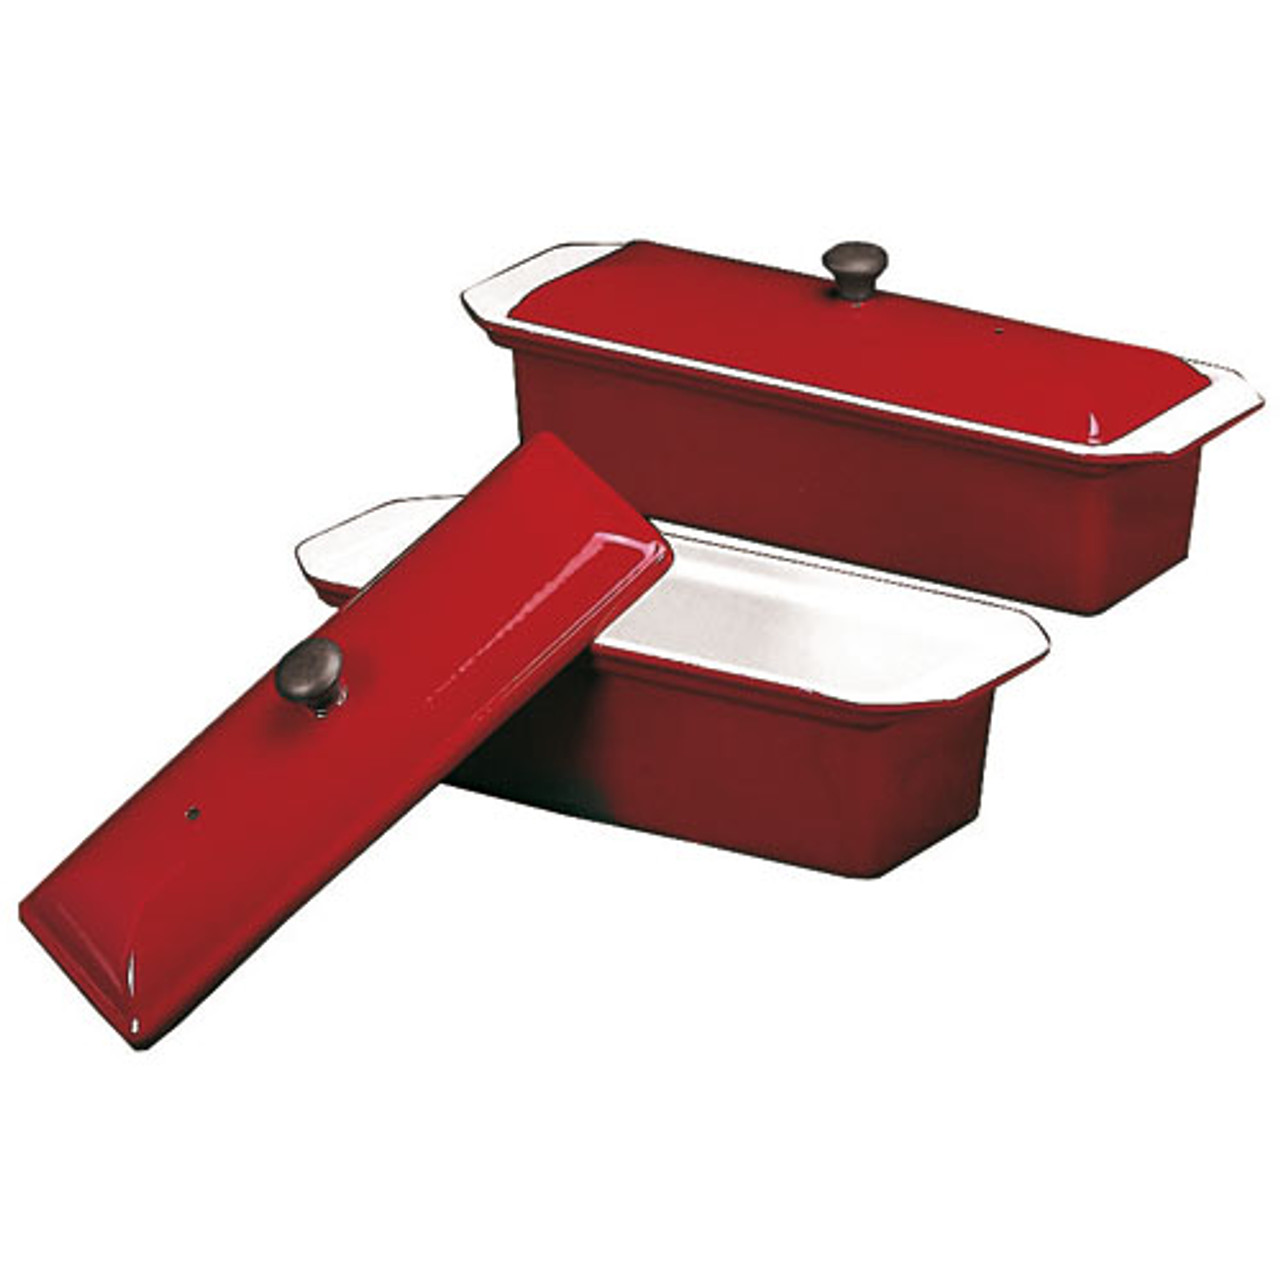 "Red Pate Terrine Mold, L 11 1/2"" X W 3 3/8"" X H 2 3/"